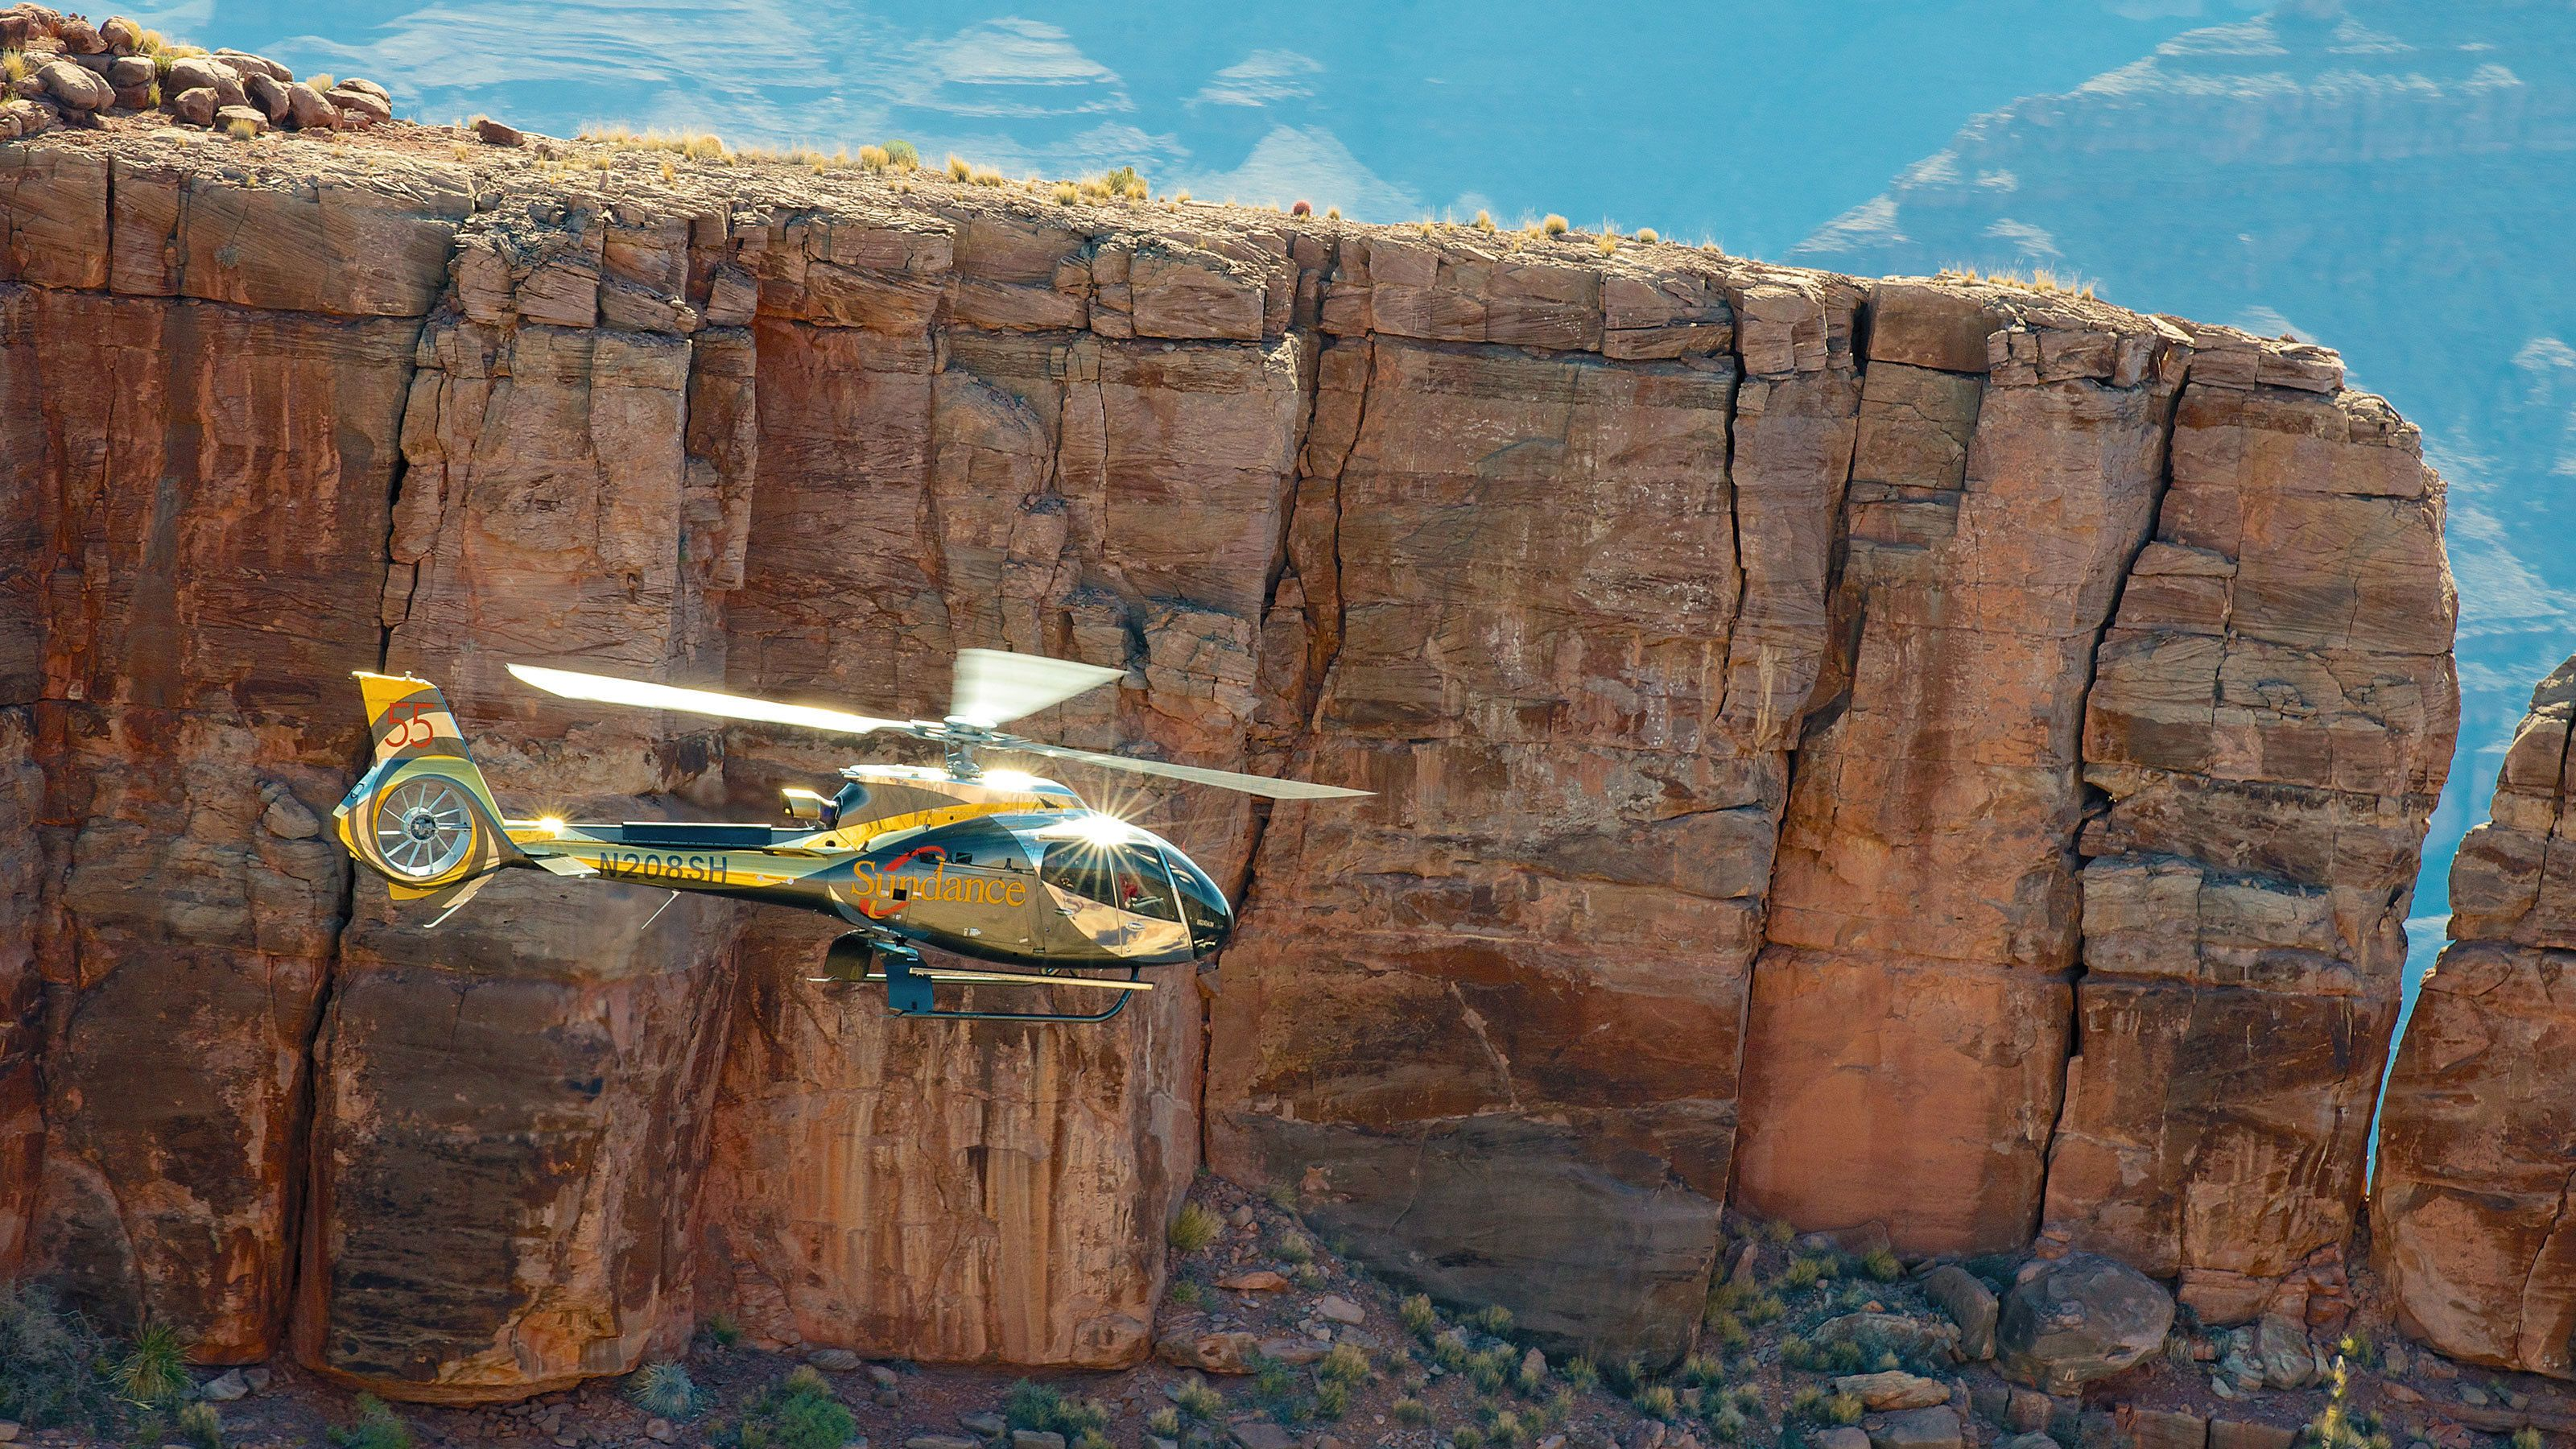 Flying helicopter with the canyon view in the background in Arizona